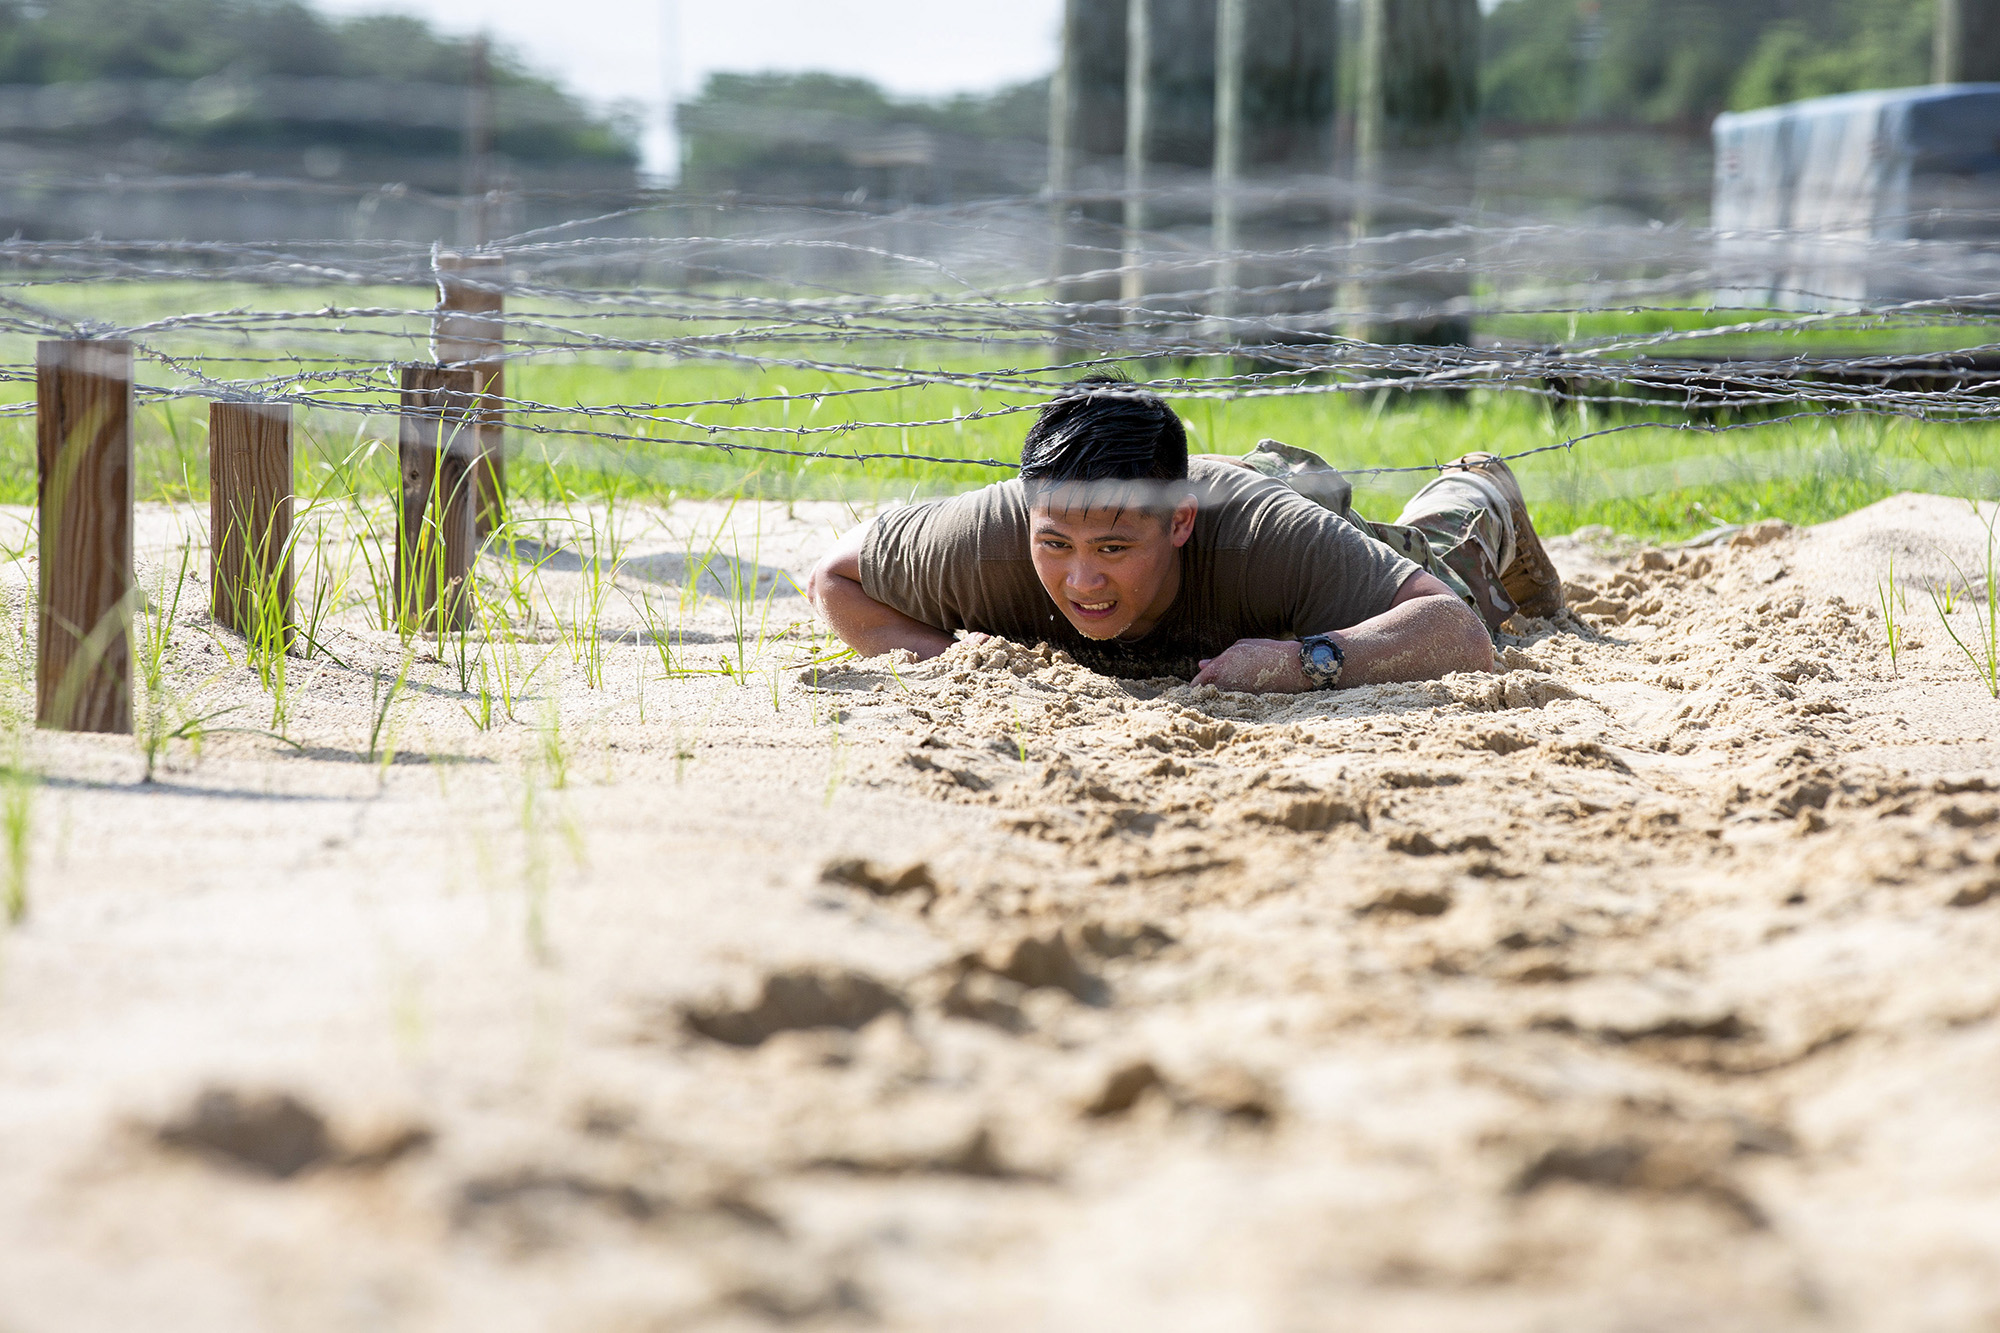 Sgt. Alexander Nguyen, assigned to U.S. Army Future Command, low crawls under barbwire June 8, 2021, during the obstacle course event of the Army Futures Command Best Warrior Competition at Joint Base San Antonio-Fort Sam Houston, Texas. (Spc. Ashlind House/Army)